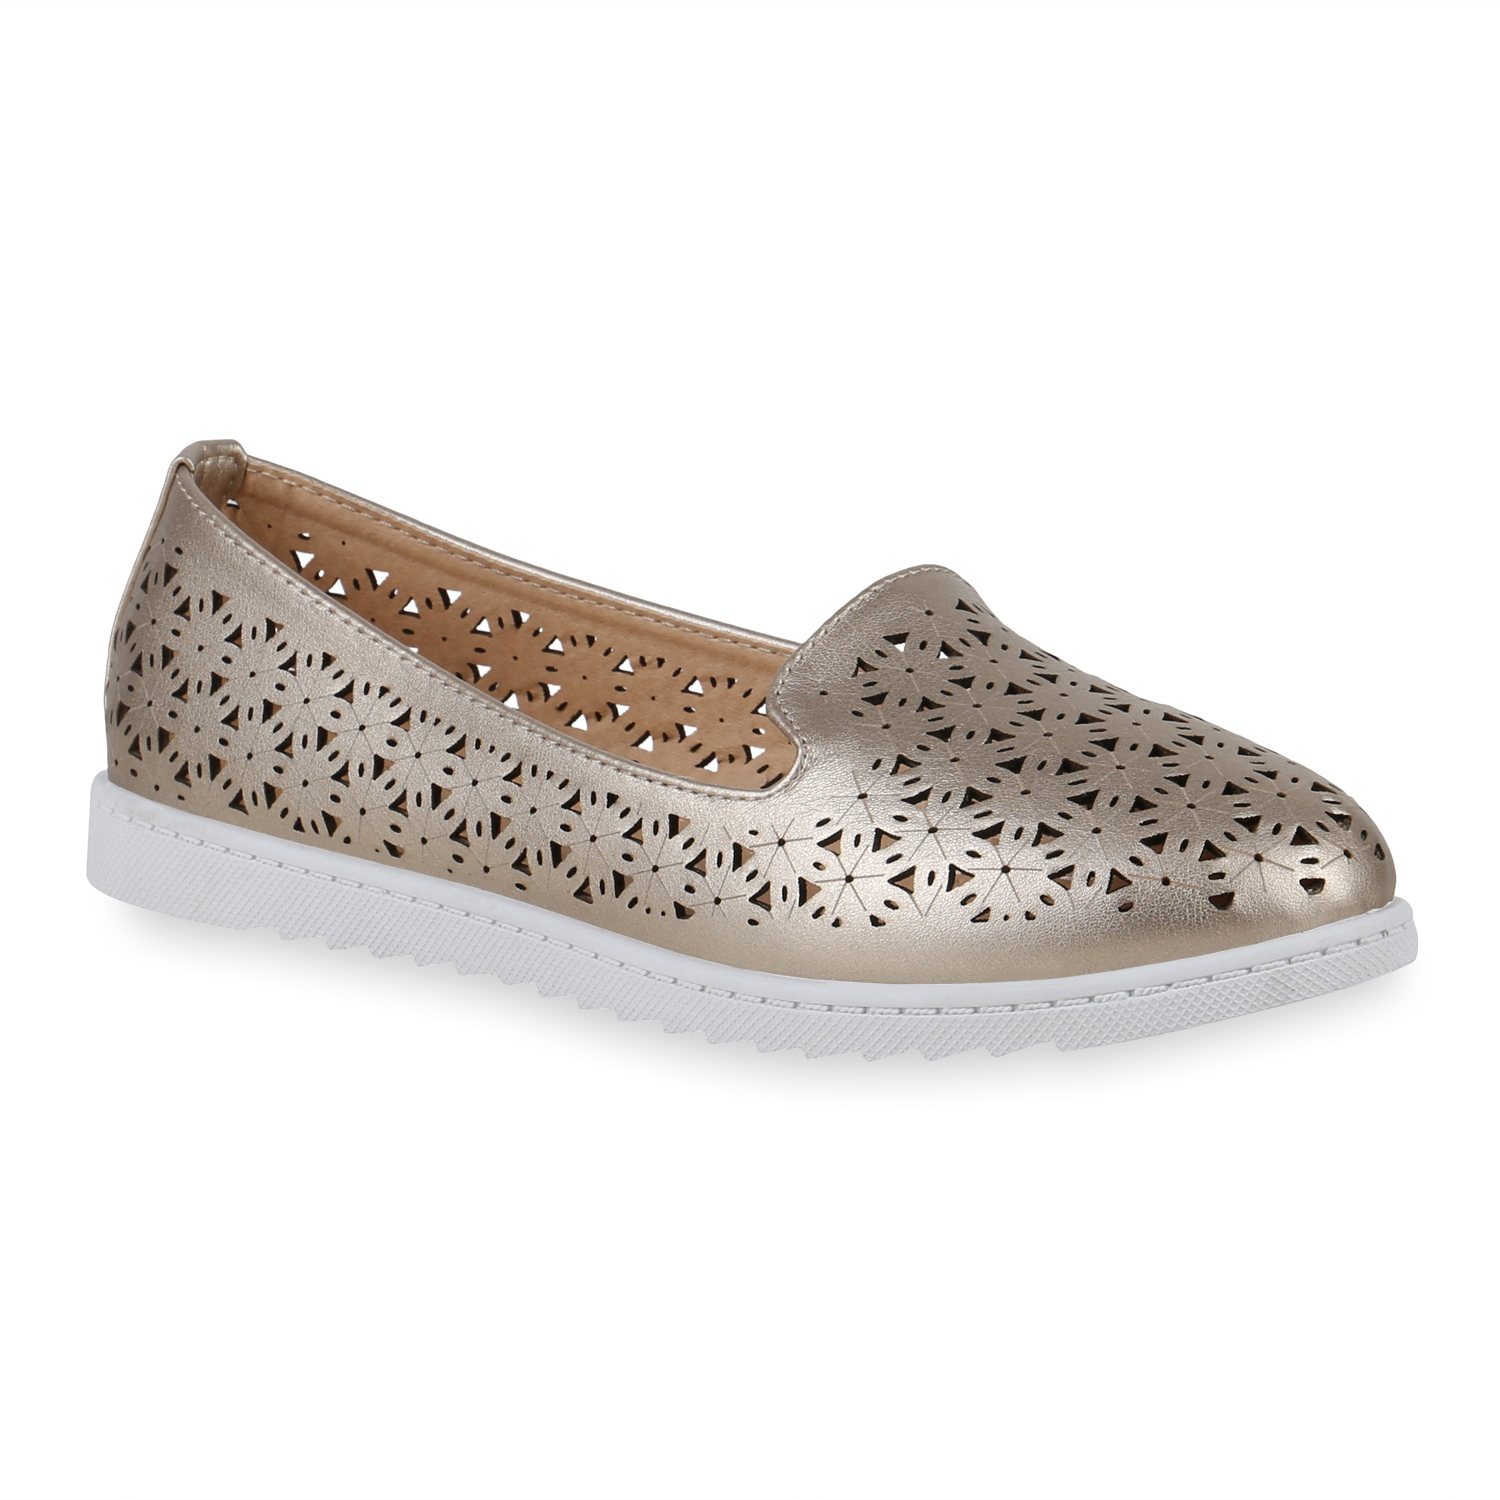 Damen Slippers Loafers - Gold